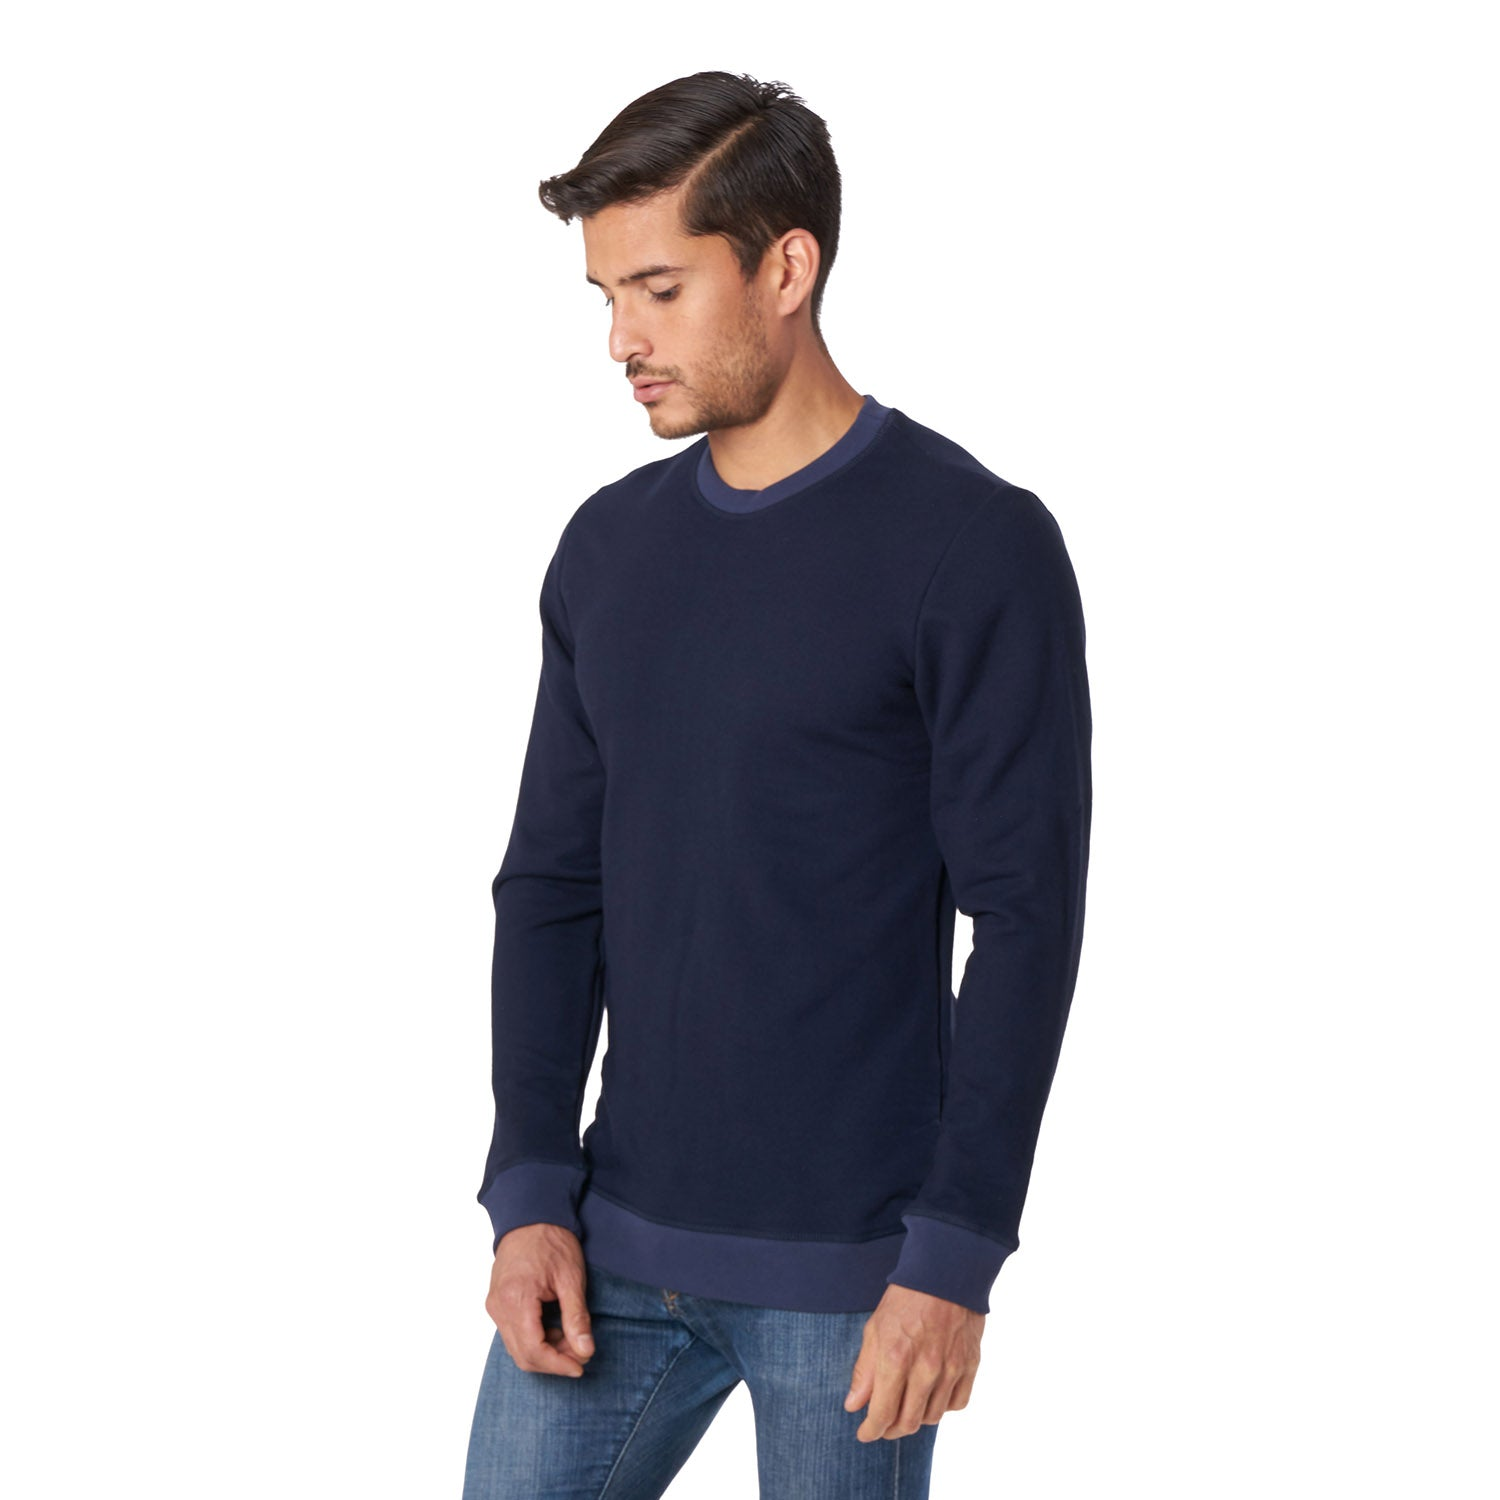 Crewneck Sweatshirt in Navy - Mitchell Evan